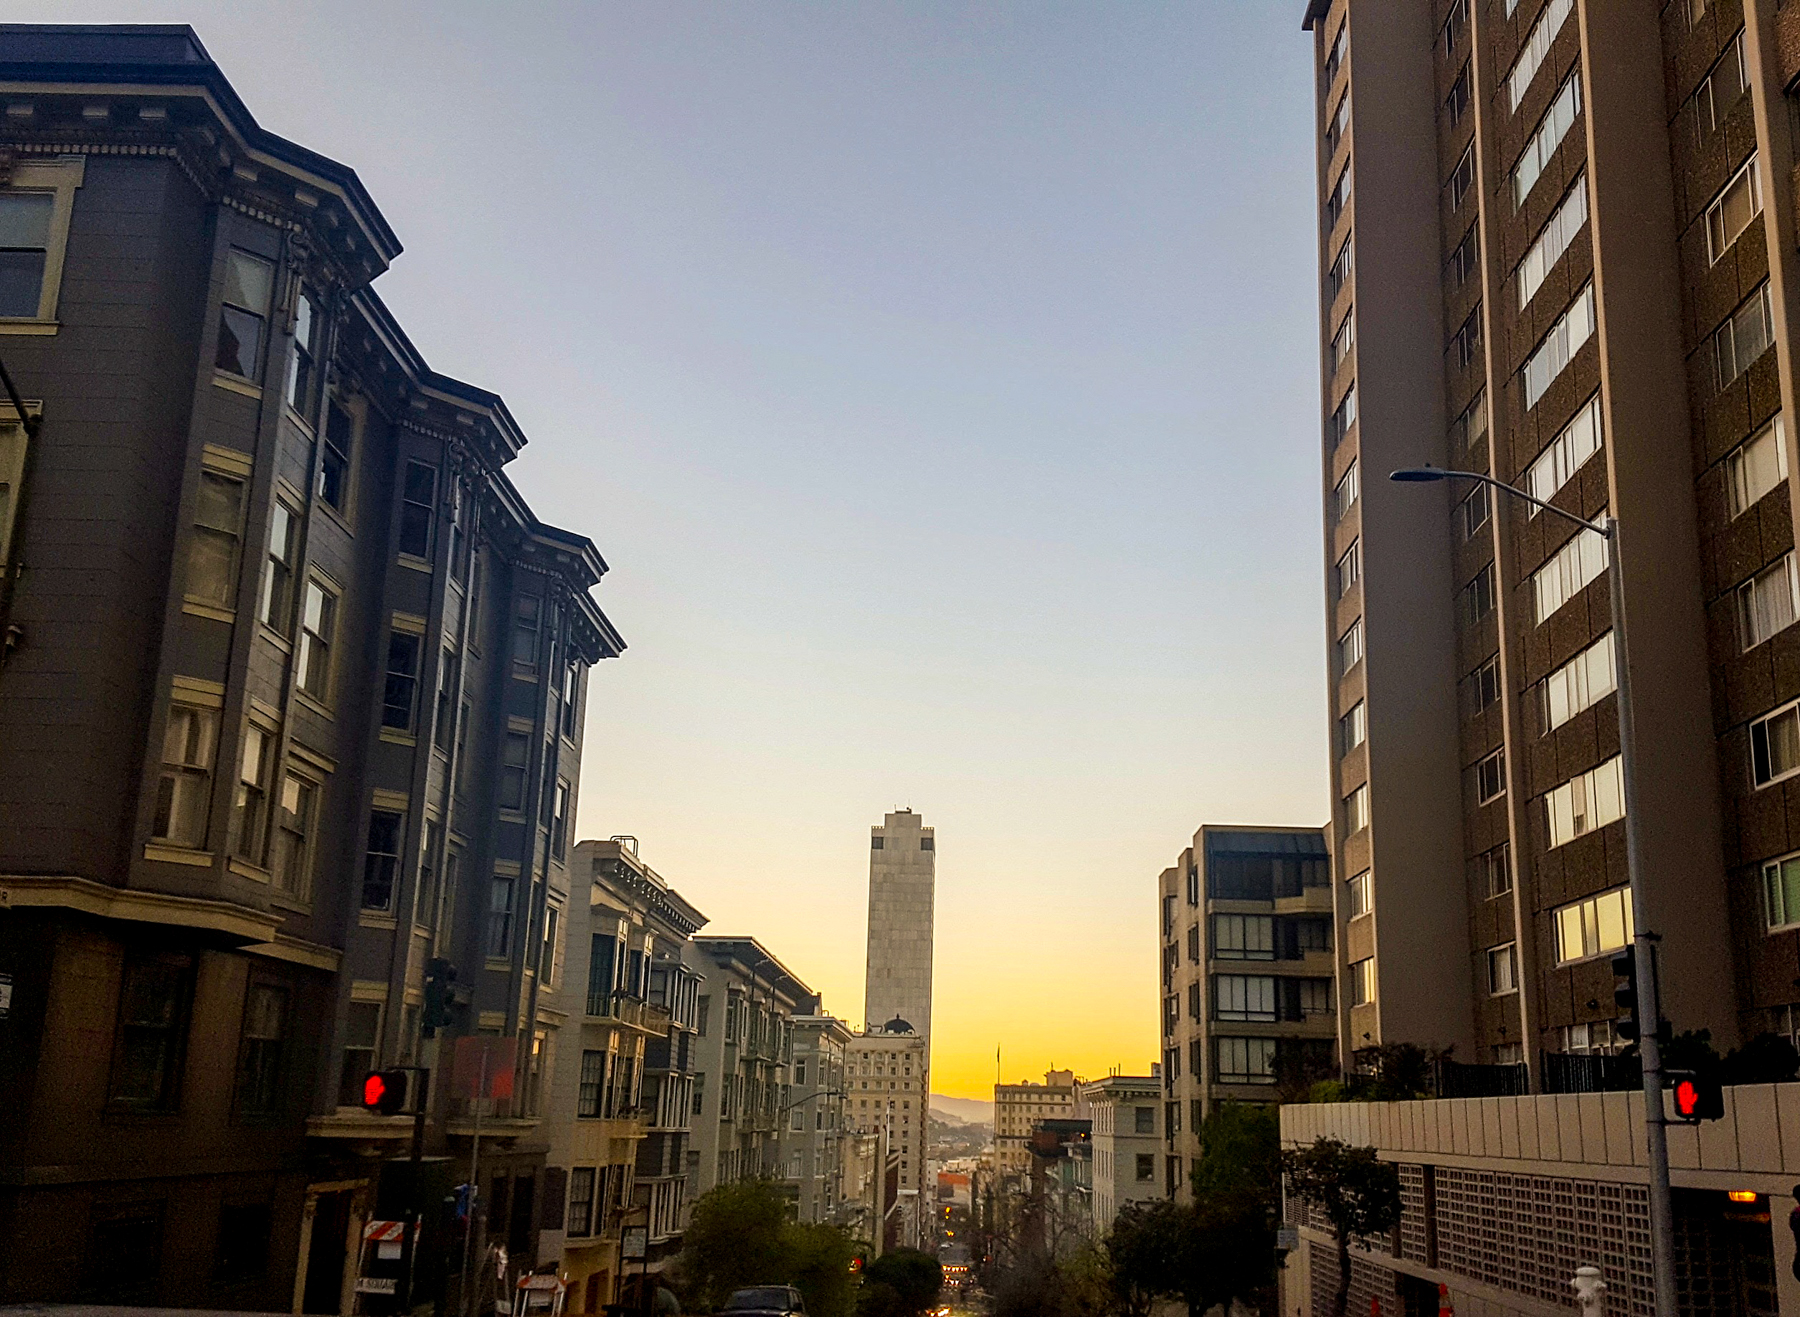 View from Pine Street in Nob Hill, at 6:45 AM.